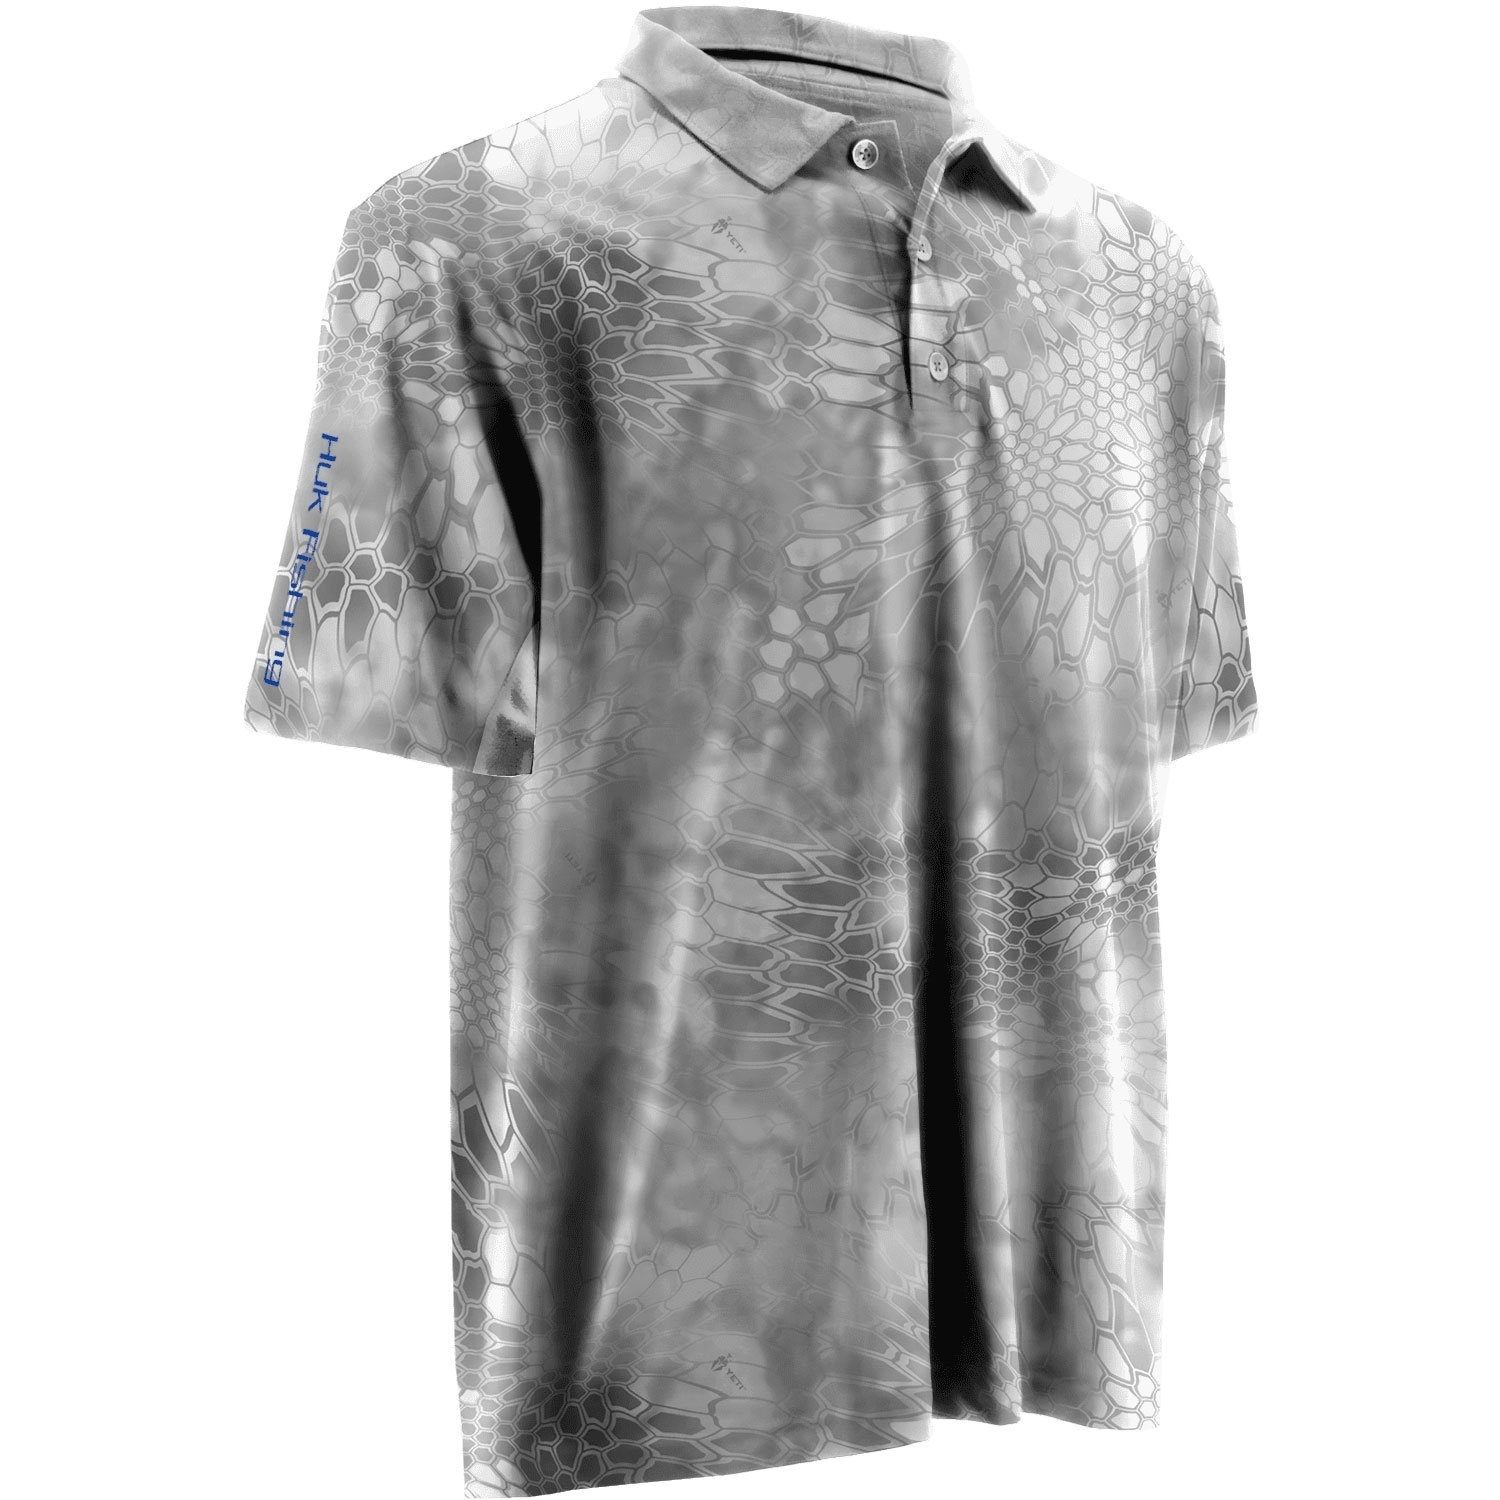 c57914c831a Shop Huk Men s Kryptek Icon Yeti Royal Large Polo Short Sleeve Shirt - Free  Shipping On Orders Over  45 - Overstock - 24219771